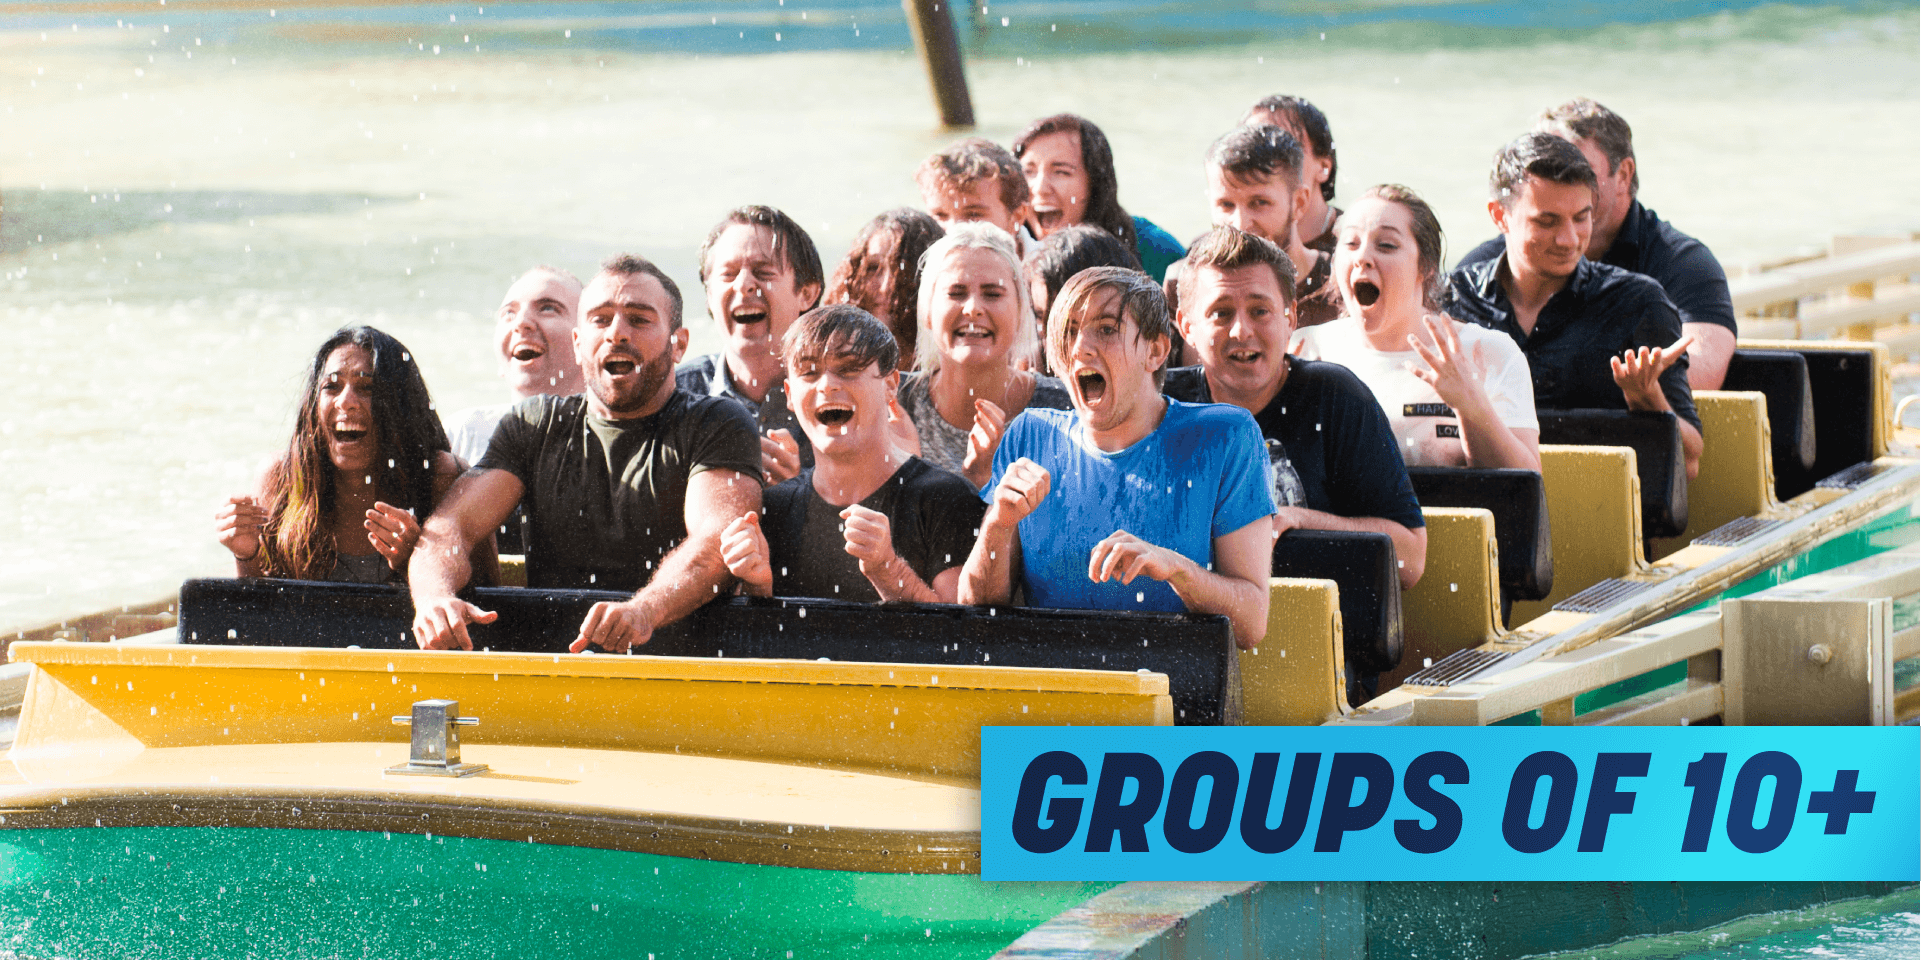 Groups of 10+ Theme Park Group Deal